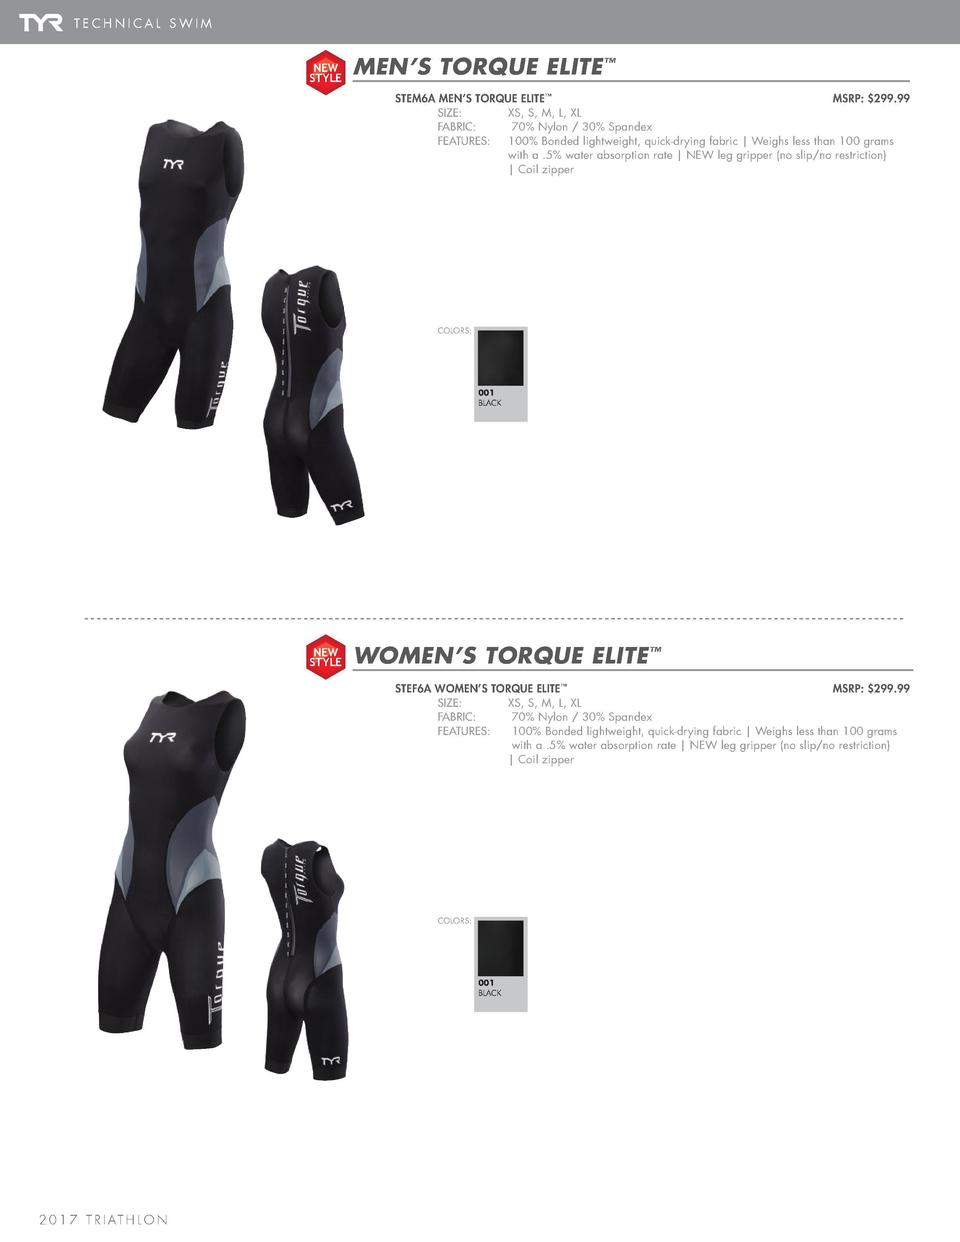 TORQUE ELITE   TORQUE LITE  TECHNICAL SWIM NEW STYLE  MEN   S TORQUE ELITE    STEM6A MEN   S TORQUE ELITE       MSRP   299...